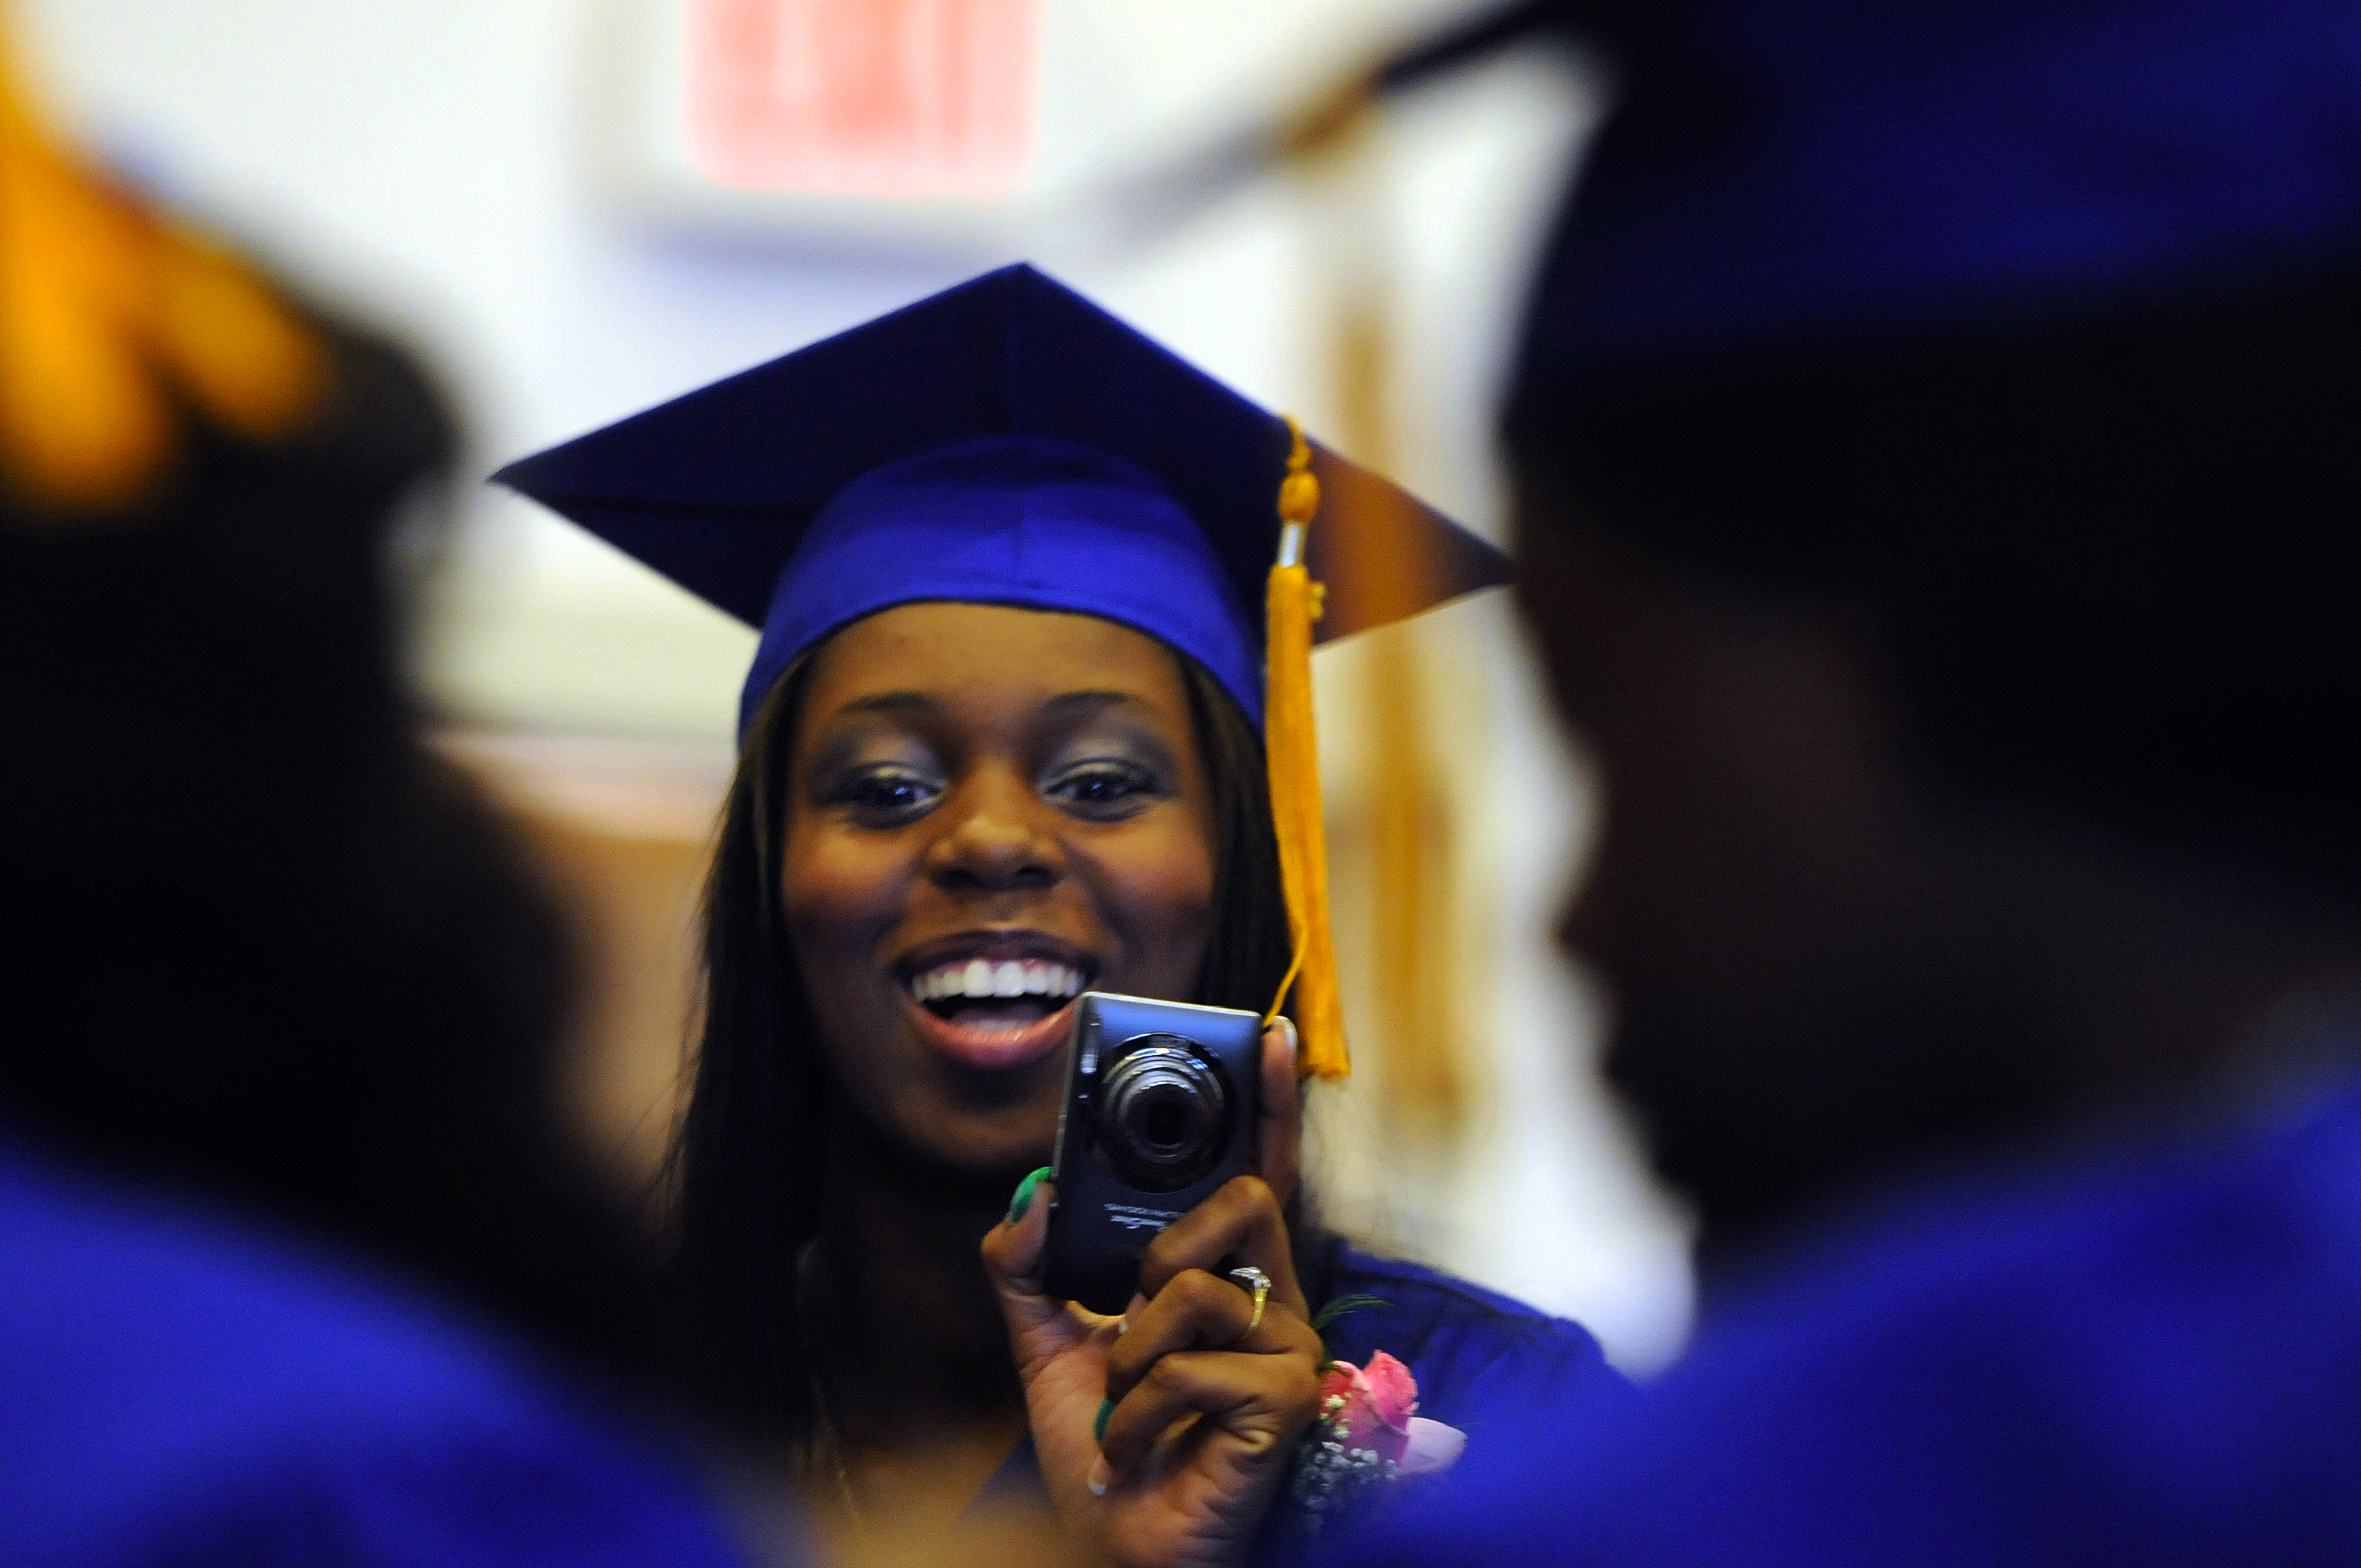 Lichelle Burke, 19, takes photos of her friends before the ceremonies began.